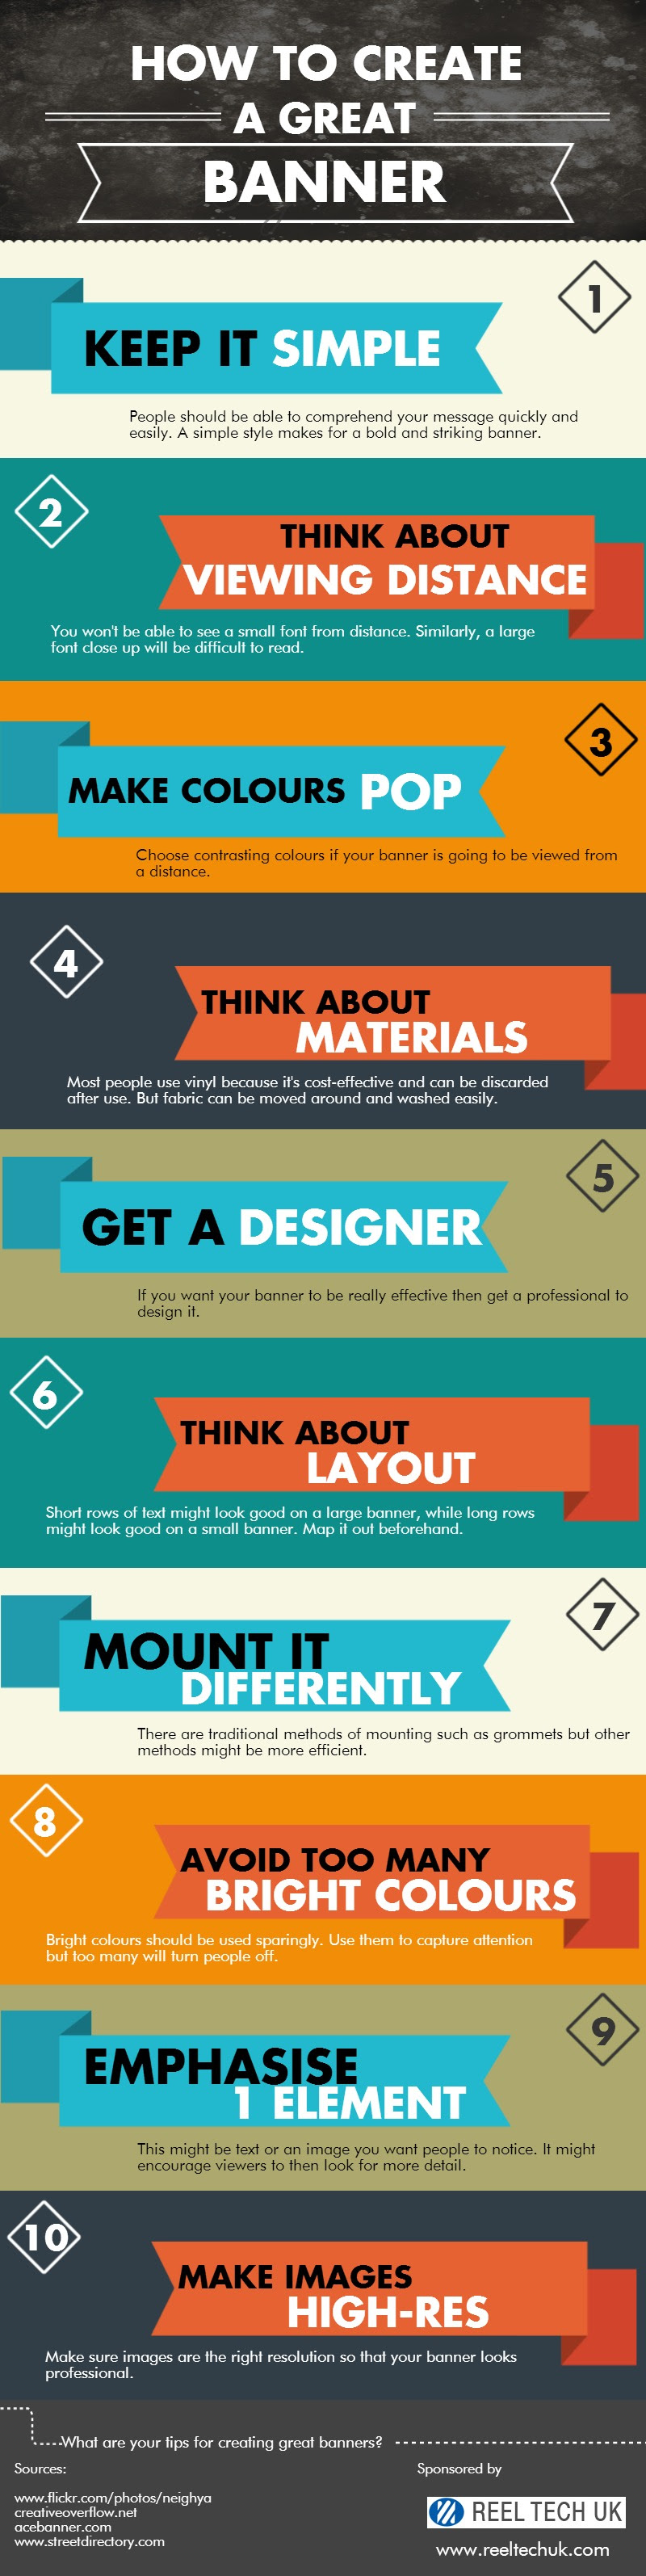 Infographic: How to Create a Great Banner #infographic